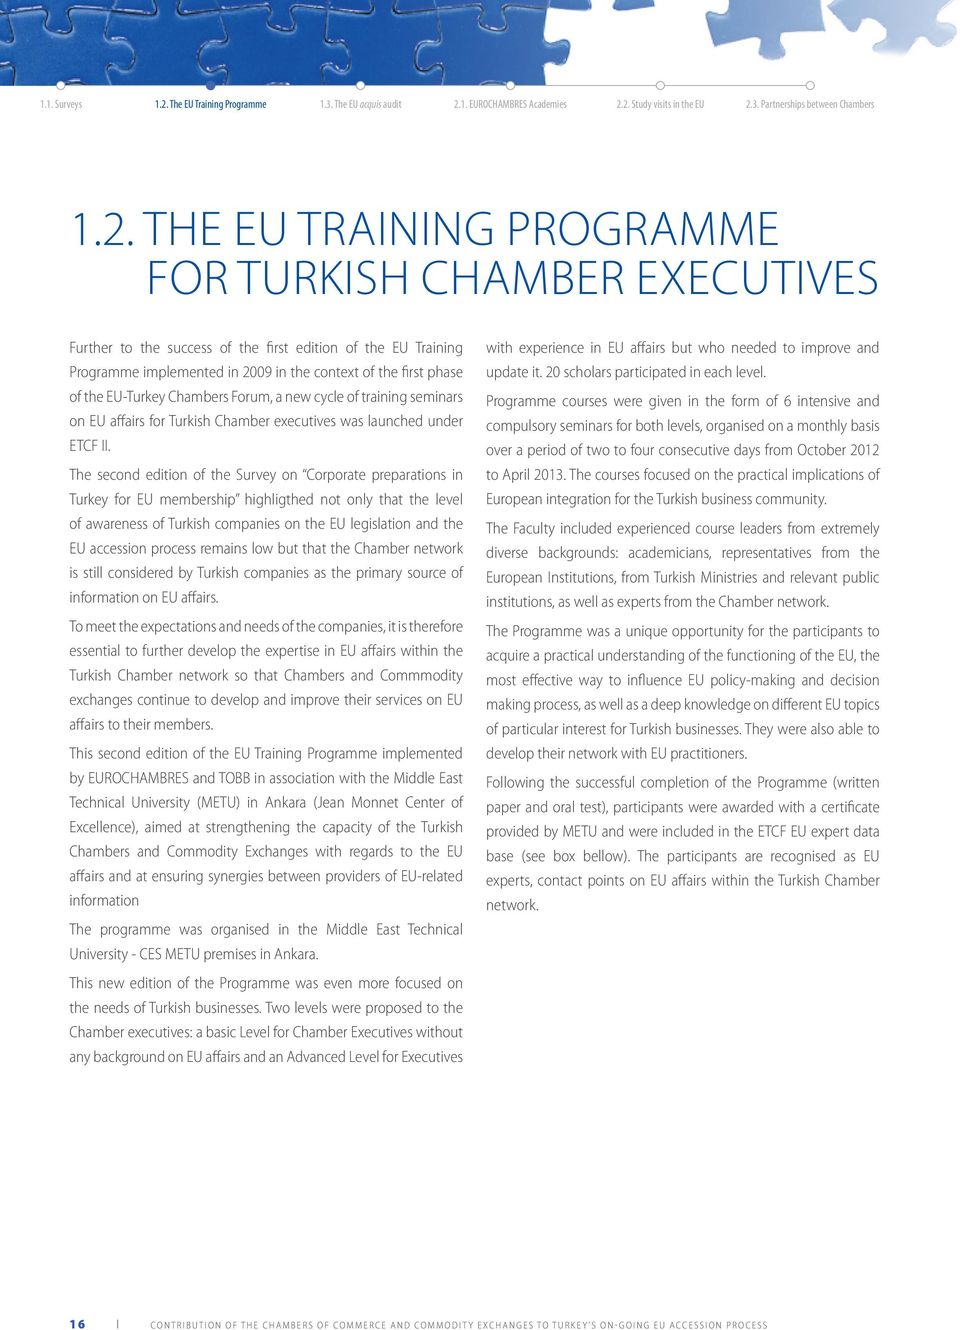 THE EU TRAINING PROGRAMME FOR TURKISH CHAMBER EXECUTIVES Further to the success of the first edition of the EU Training Programme implemented in 2009 in the context of the first phase of the